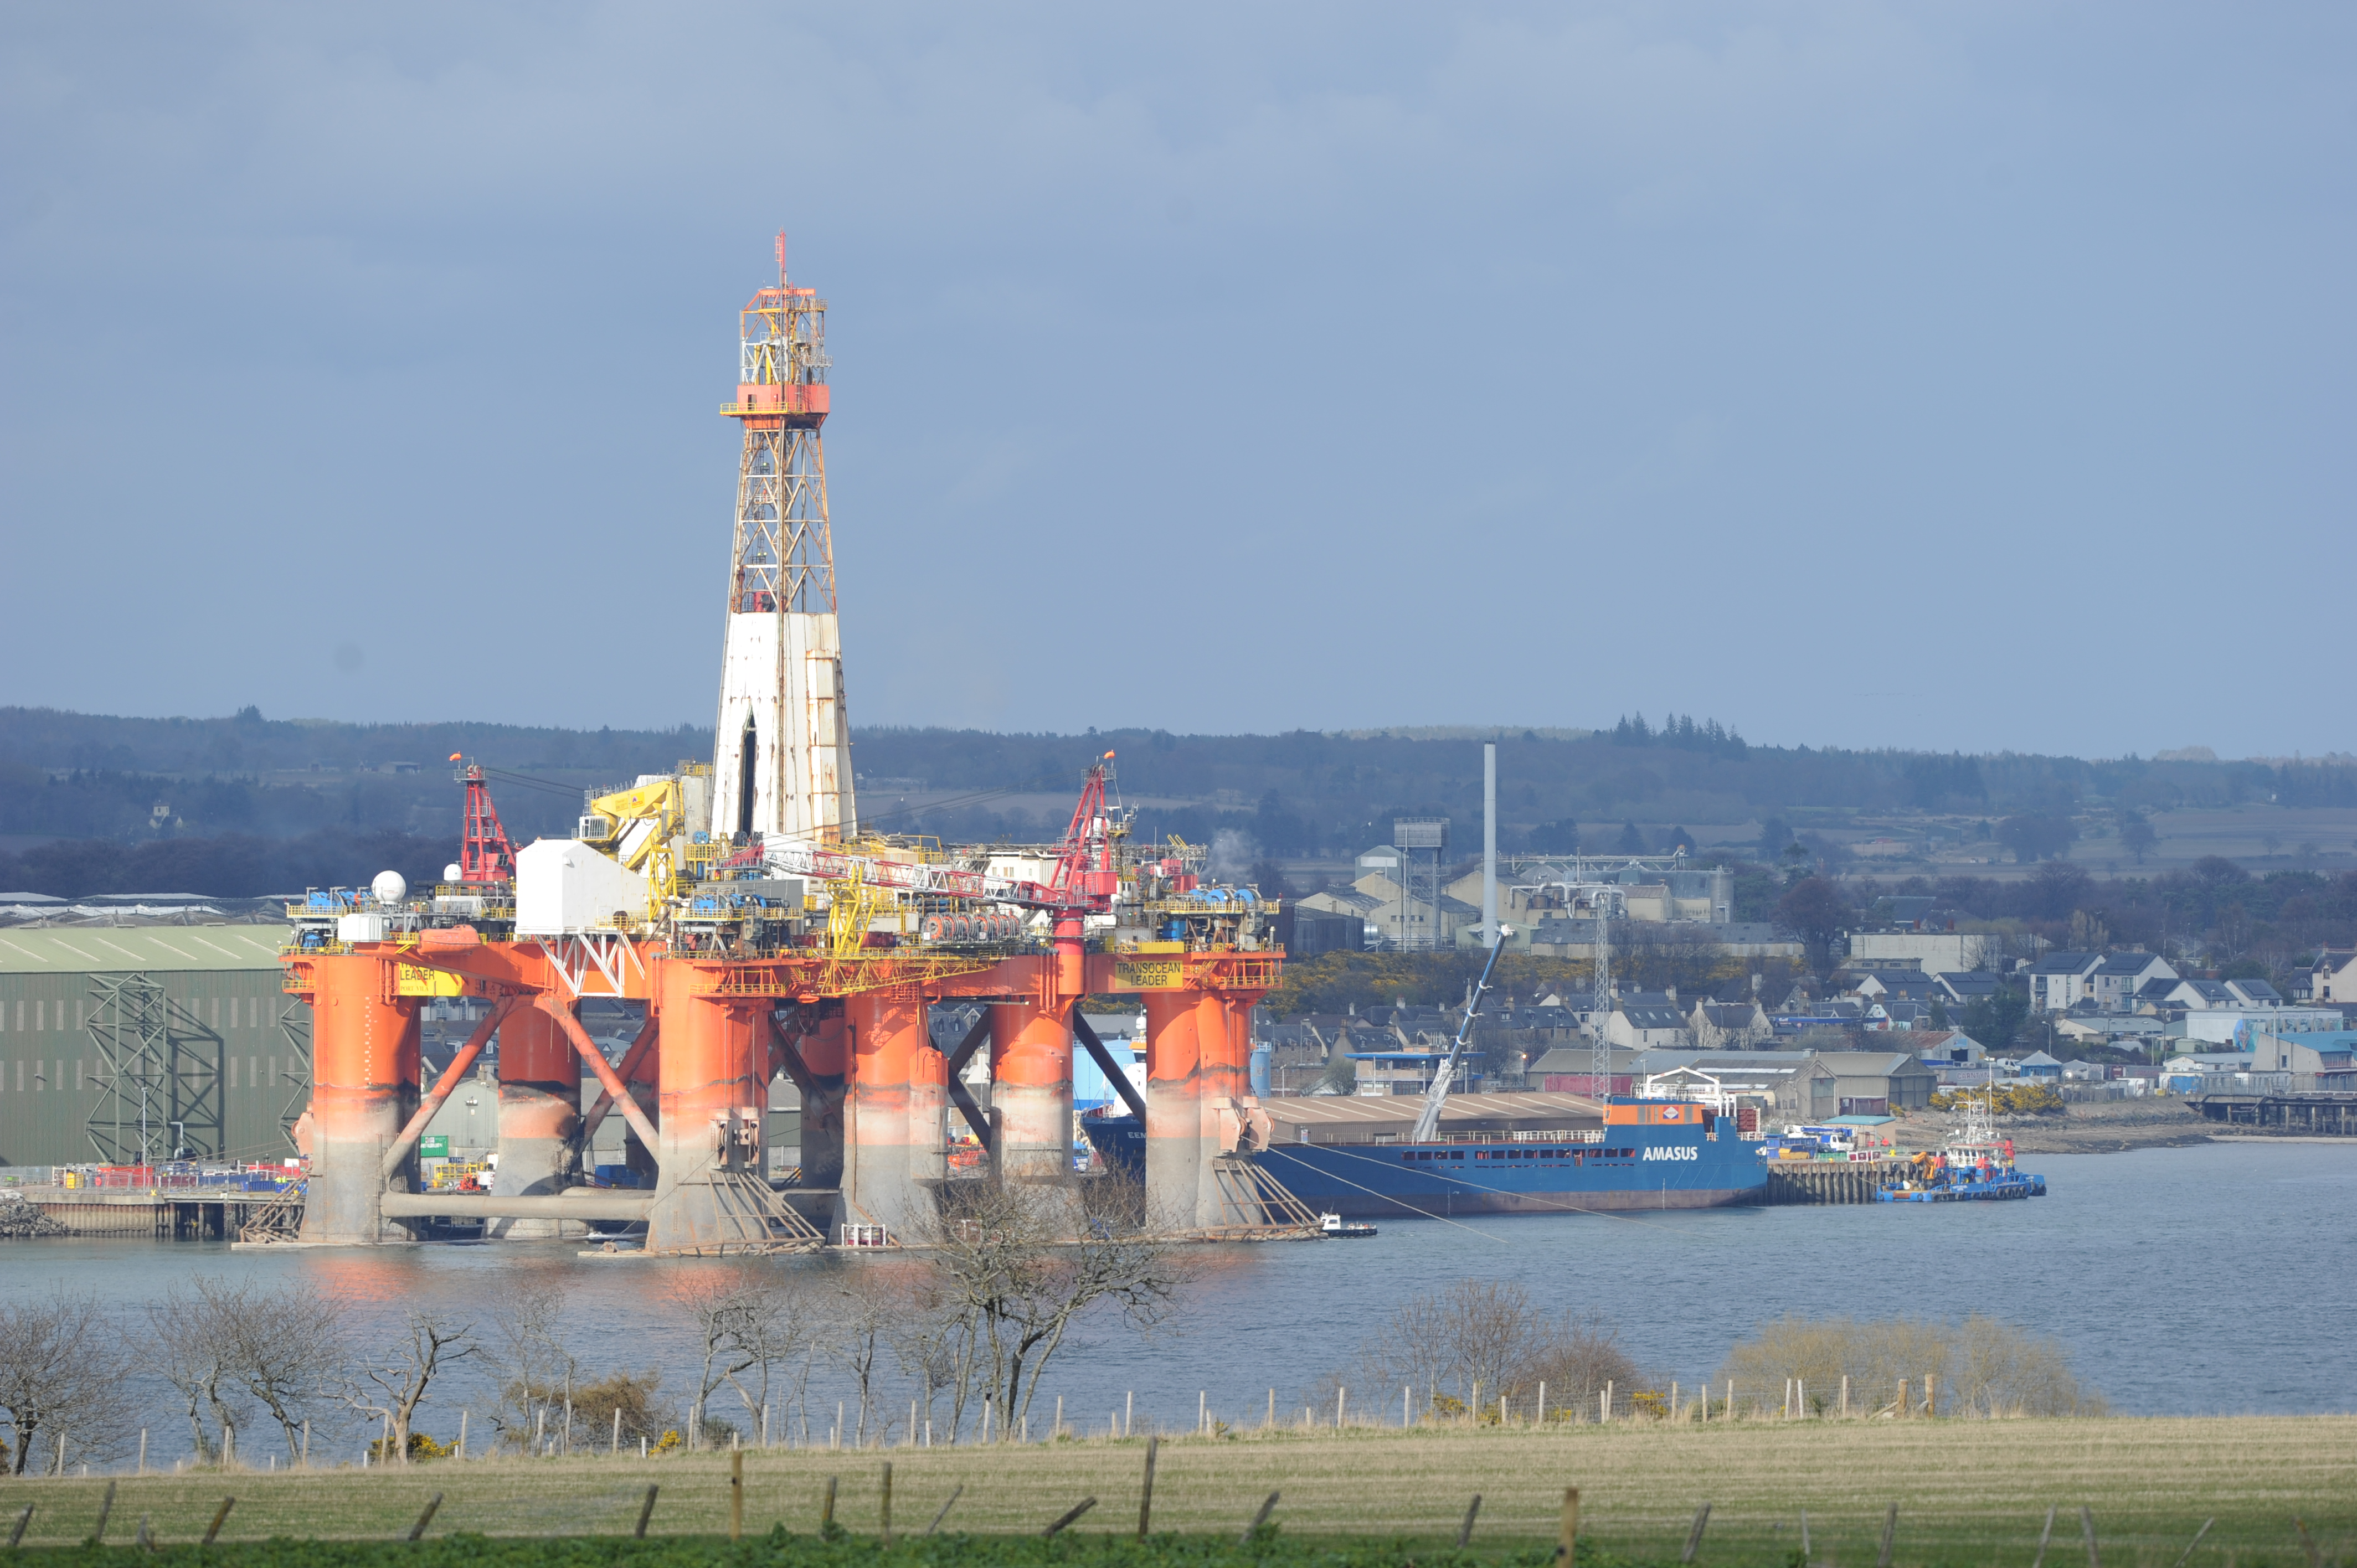 Global Energy Group's Nigg Energy Park facility at the entrance to the Cromarty Firth.